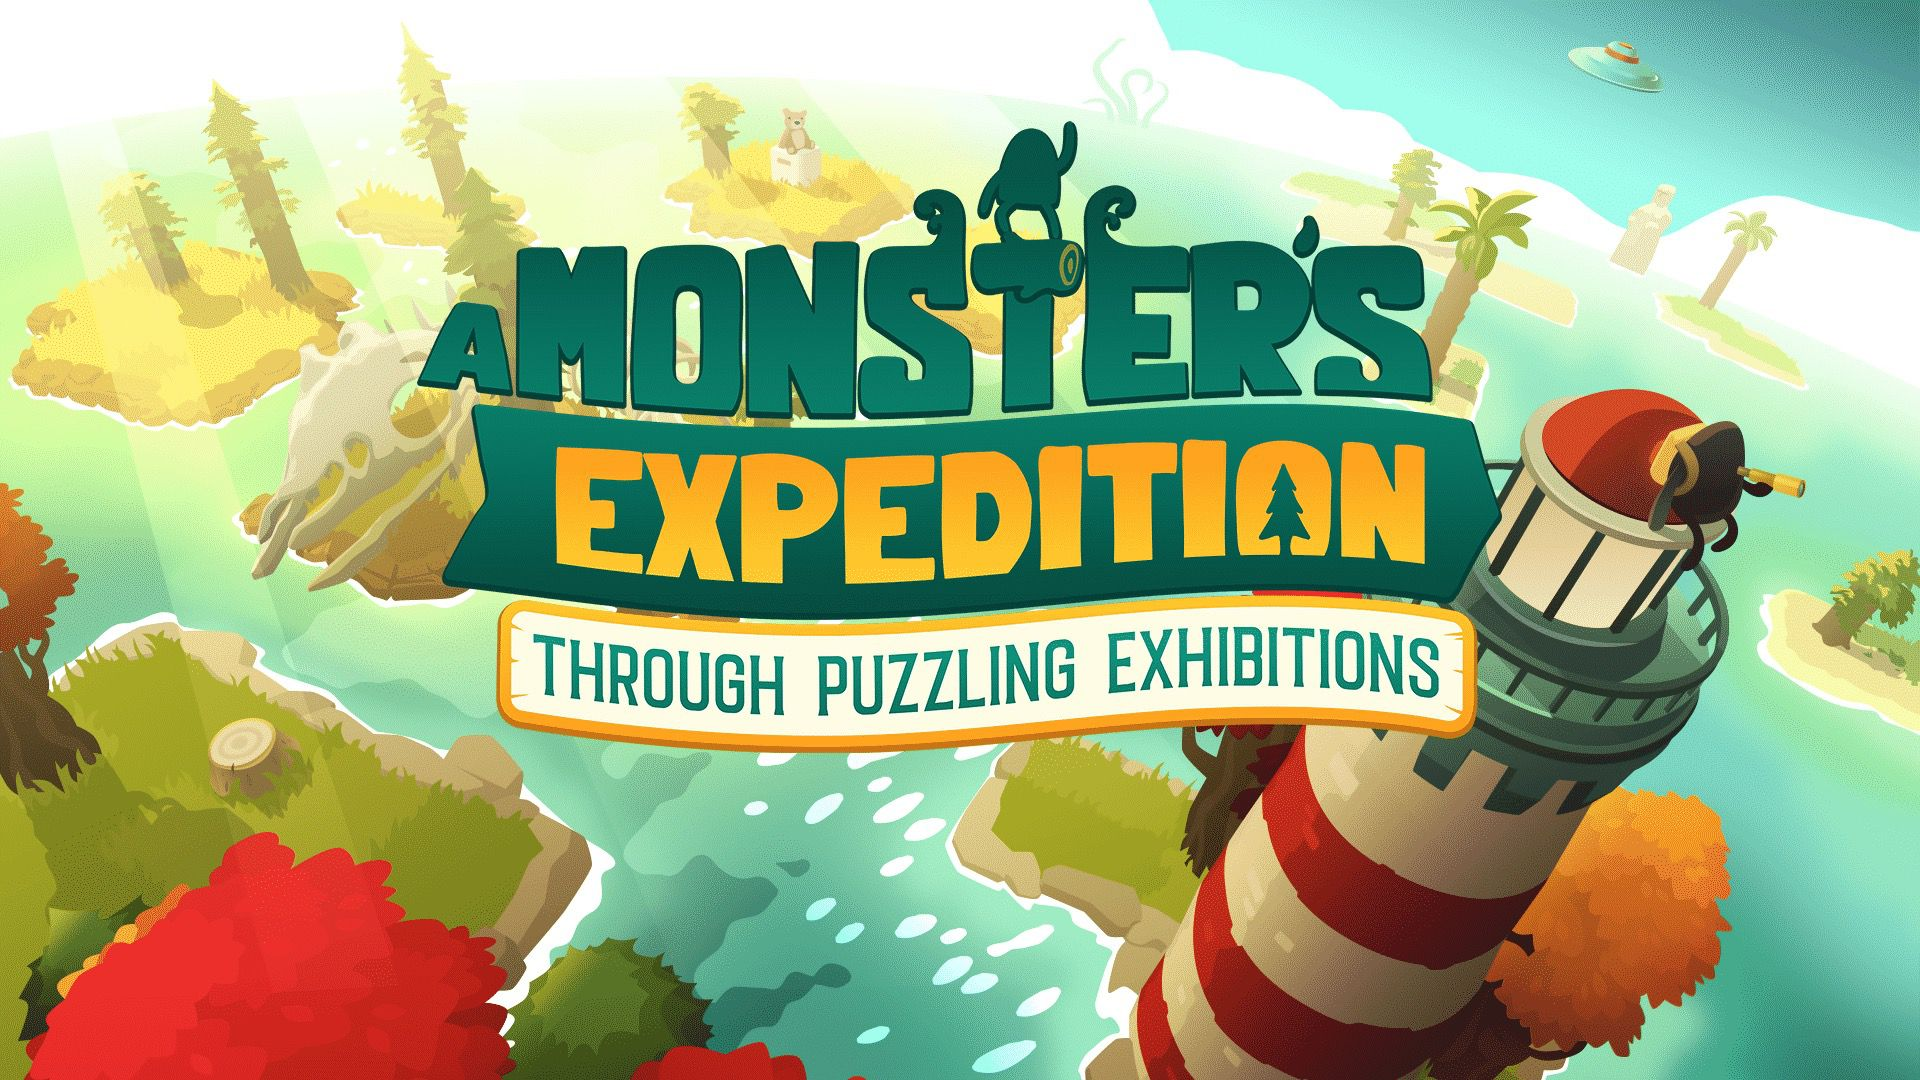 'A Monster's Expedition' Comes to Apple Arcade